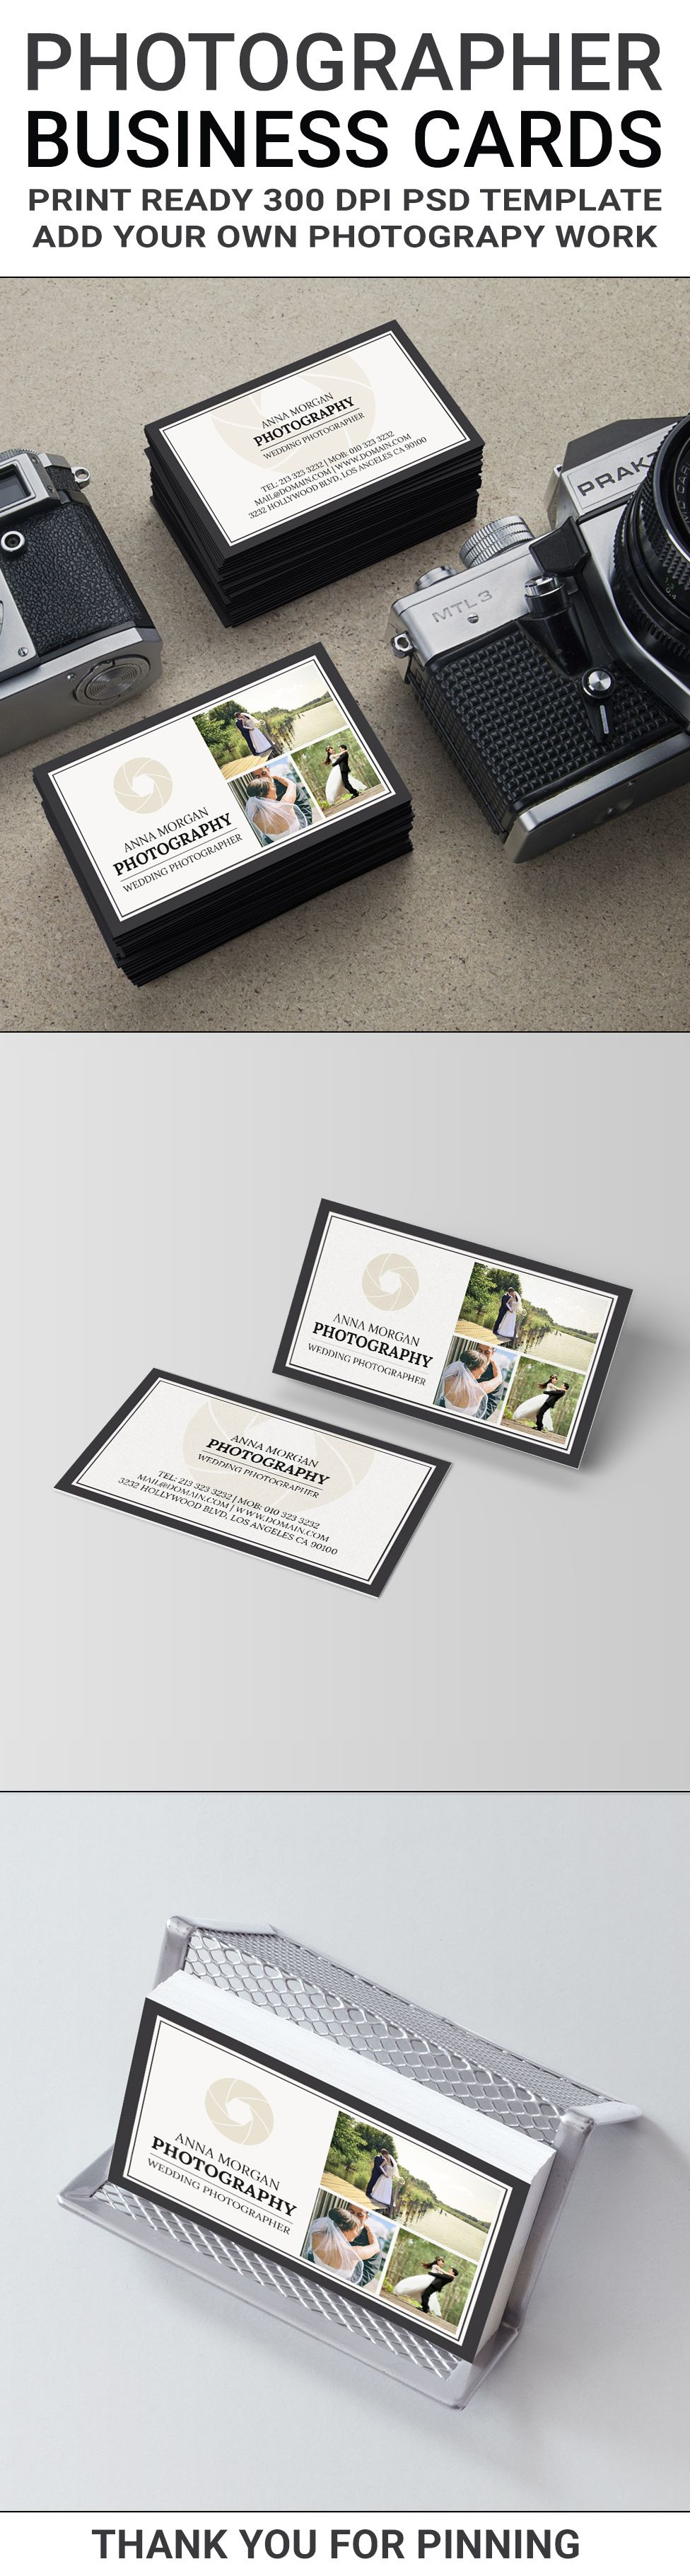 An elegant two sided business cards template for photographers this an elegant two sided business cards template for photographers this business card design offers you the ability to add your own photography work to the reheart Image collections